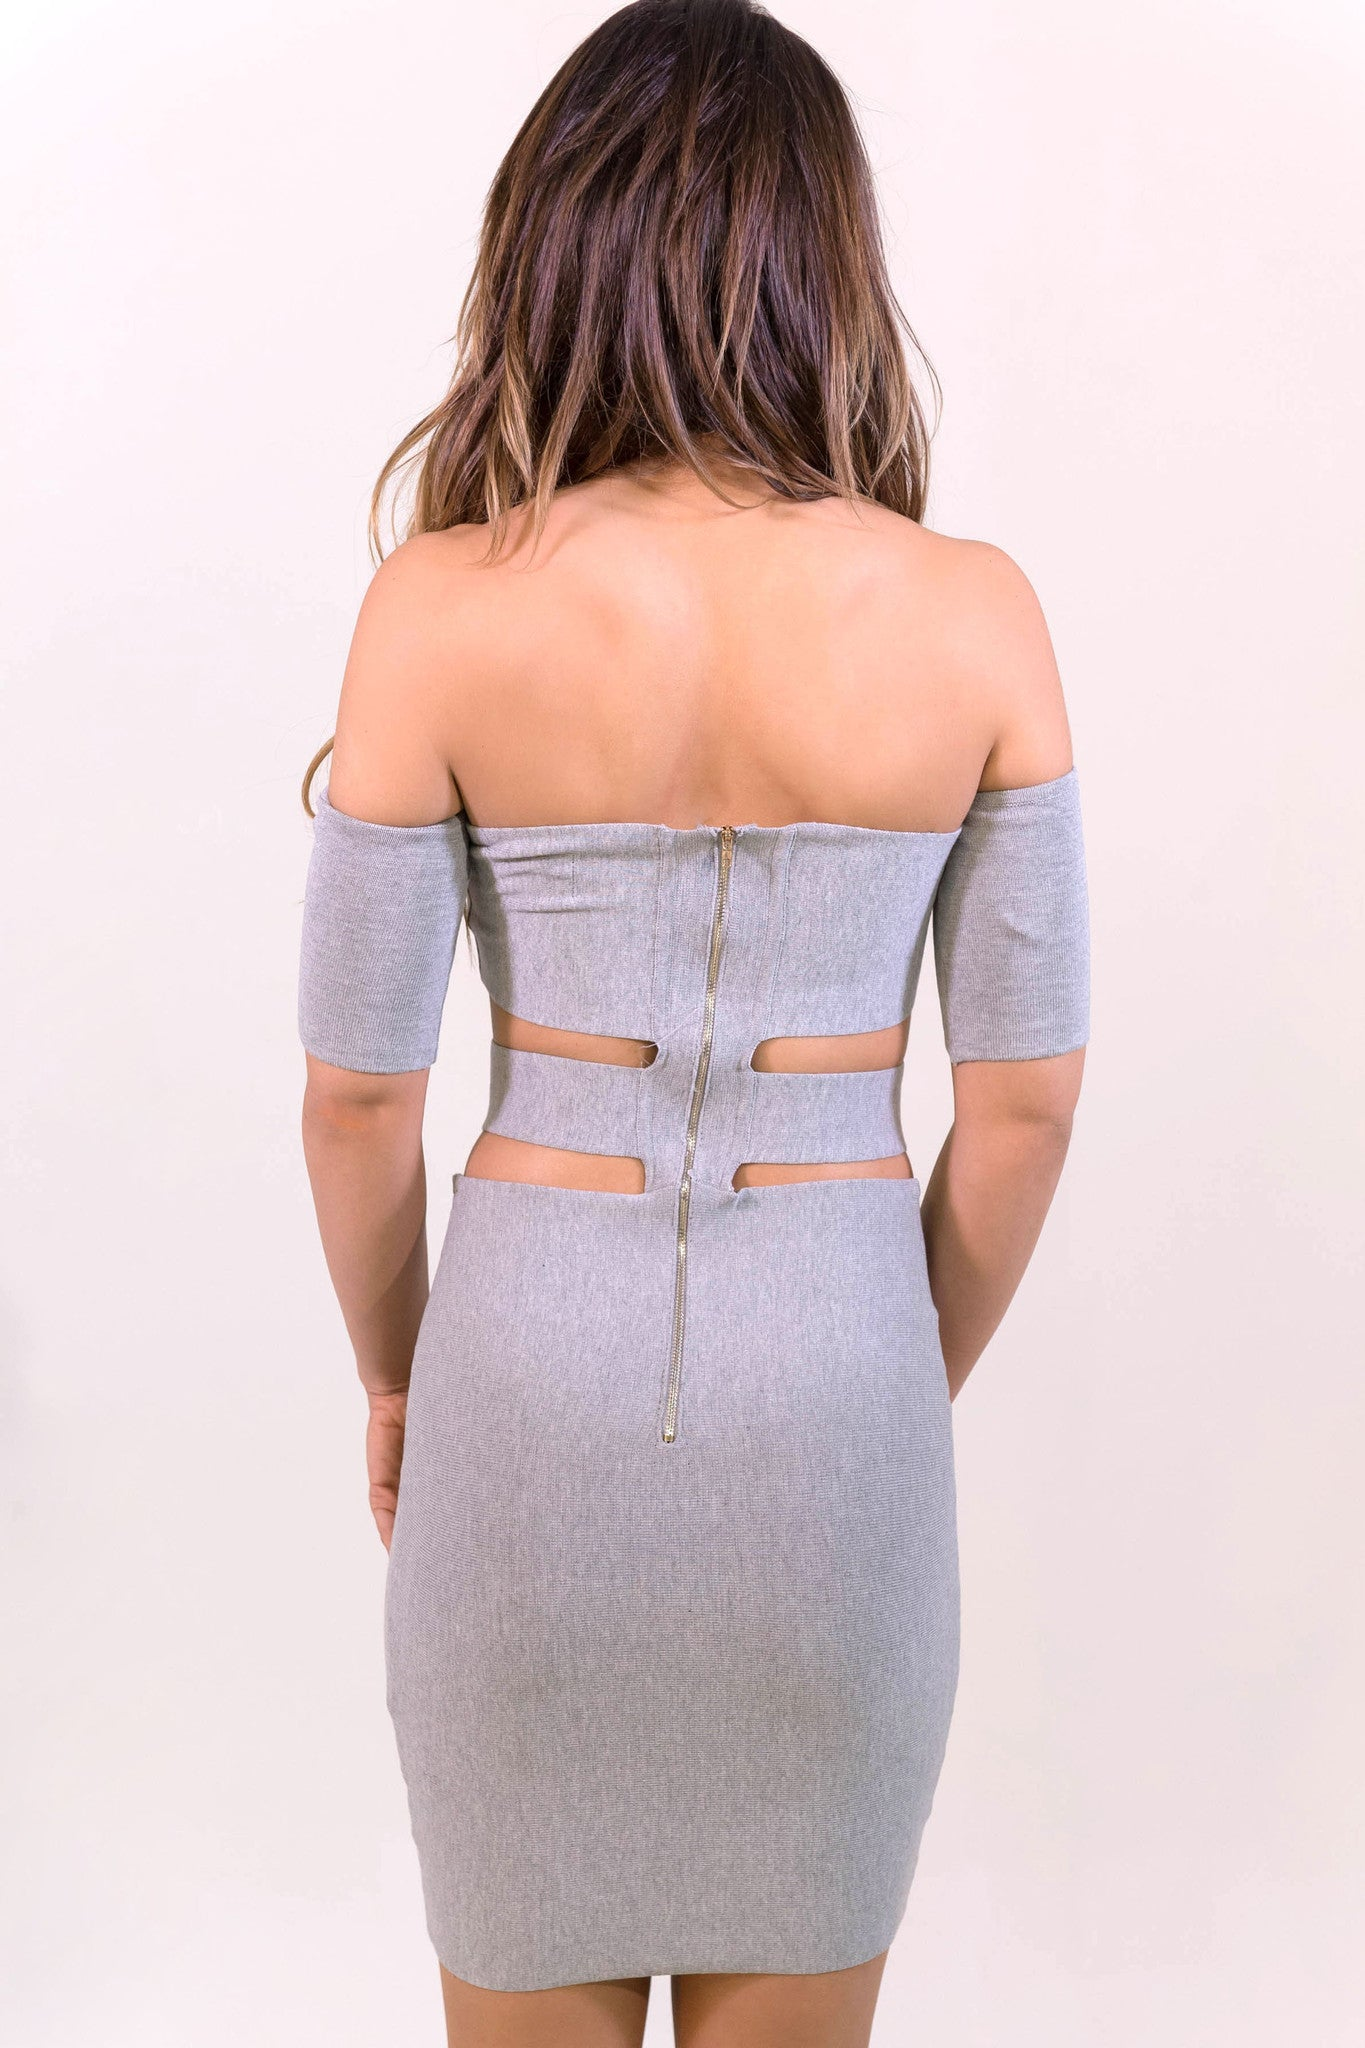 Rehab Can't Stop Me Dress - Grey - DRESSES - REHAB - Free Vibrationz - 3